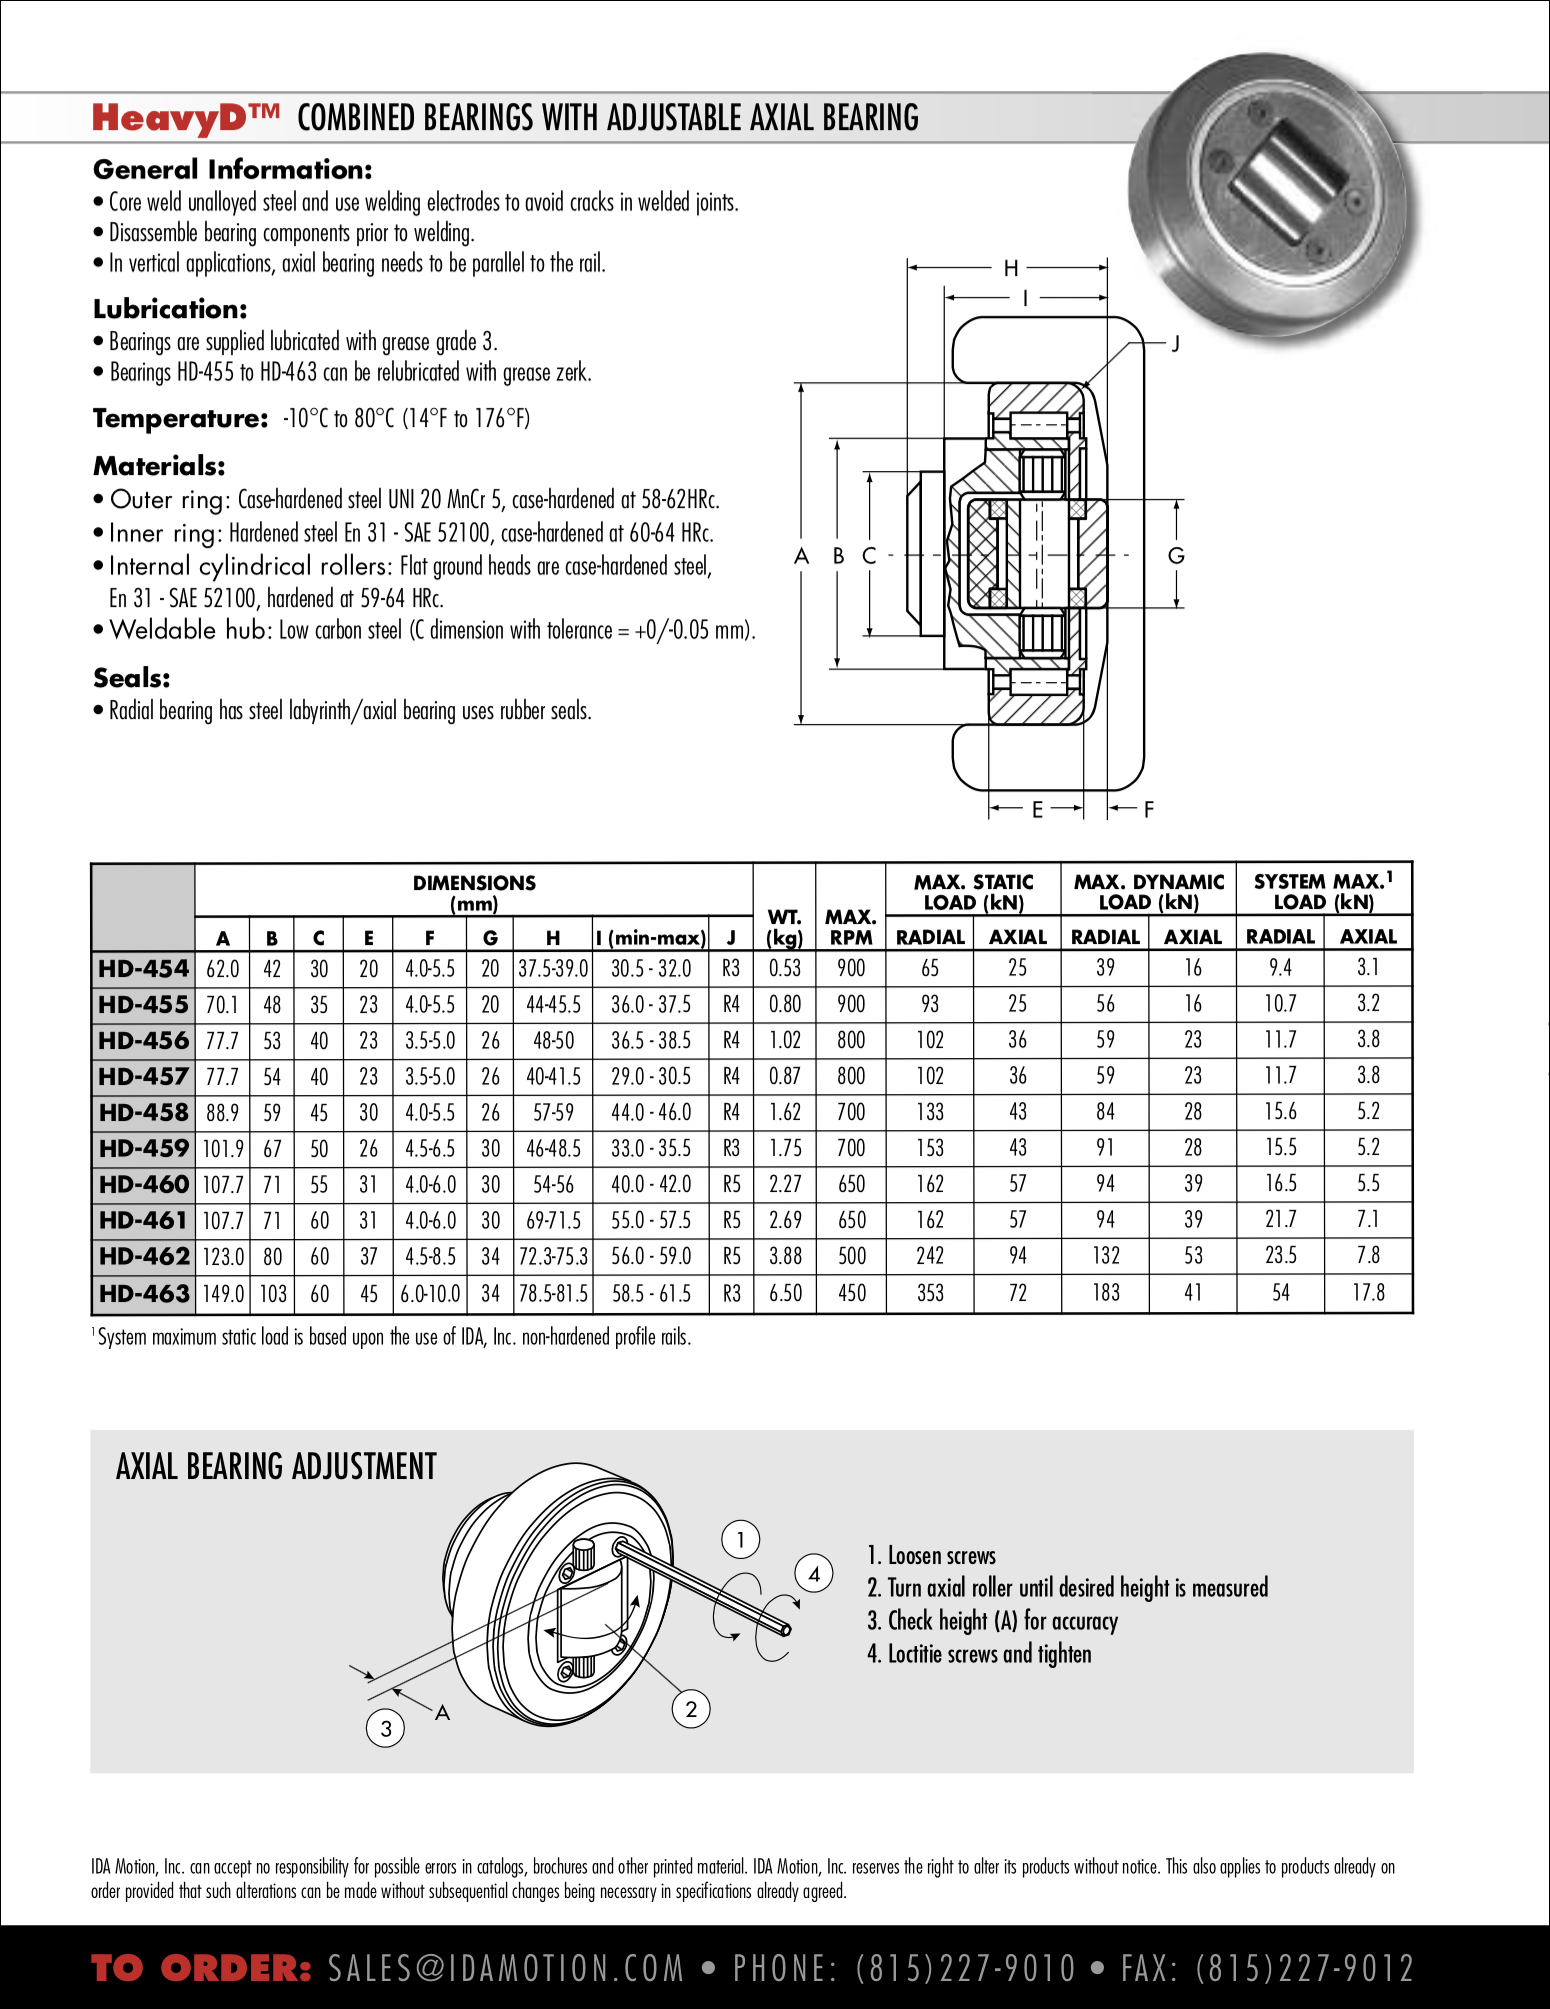 Combined Bearings with Adjustable Axial Roller, Iron Roughneck Bearing